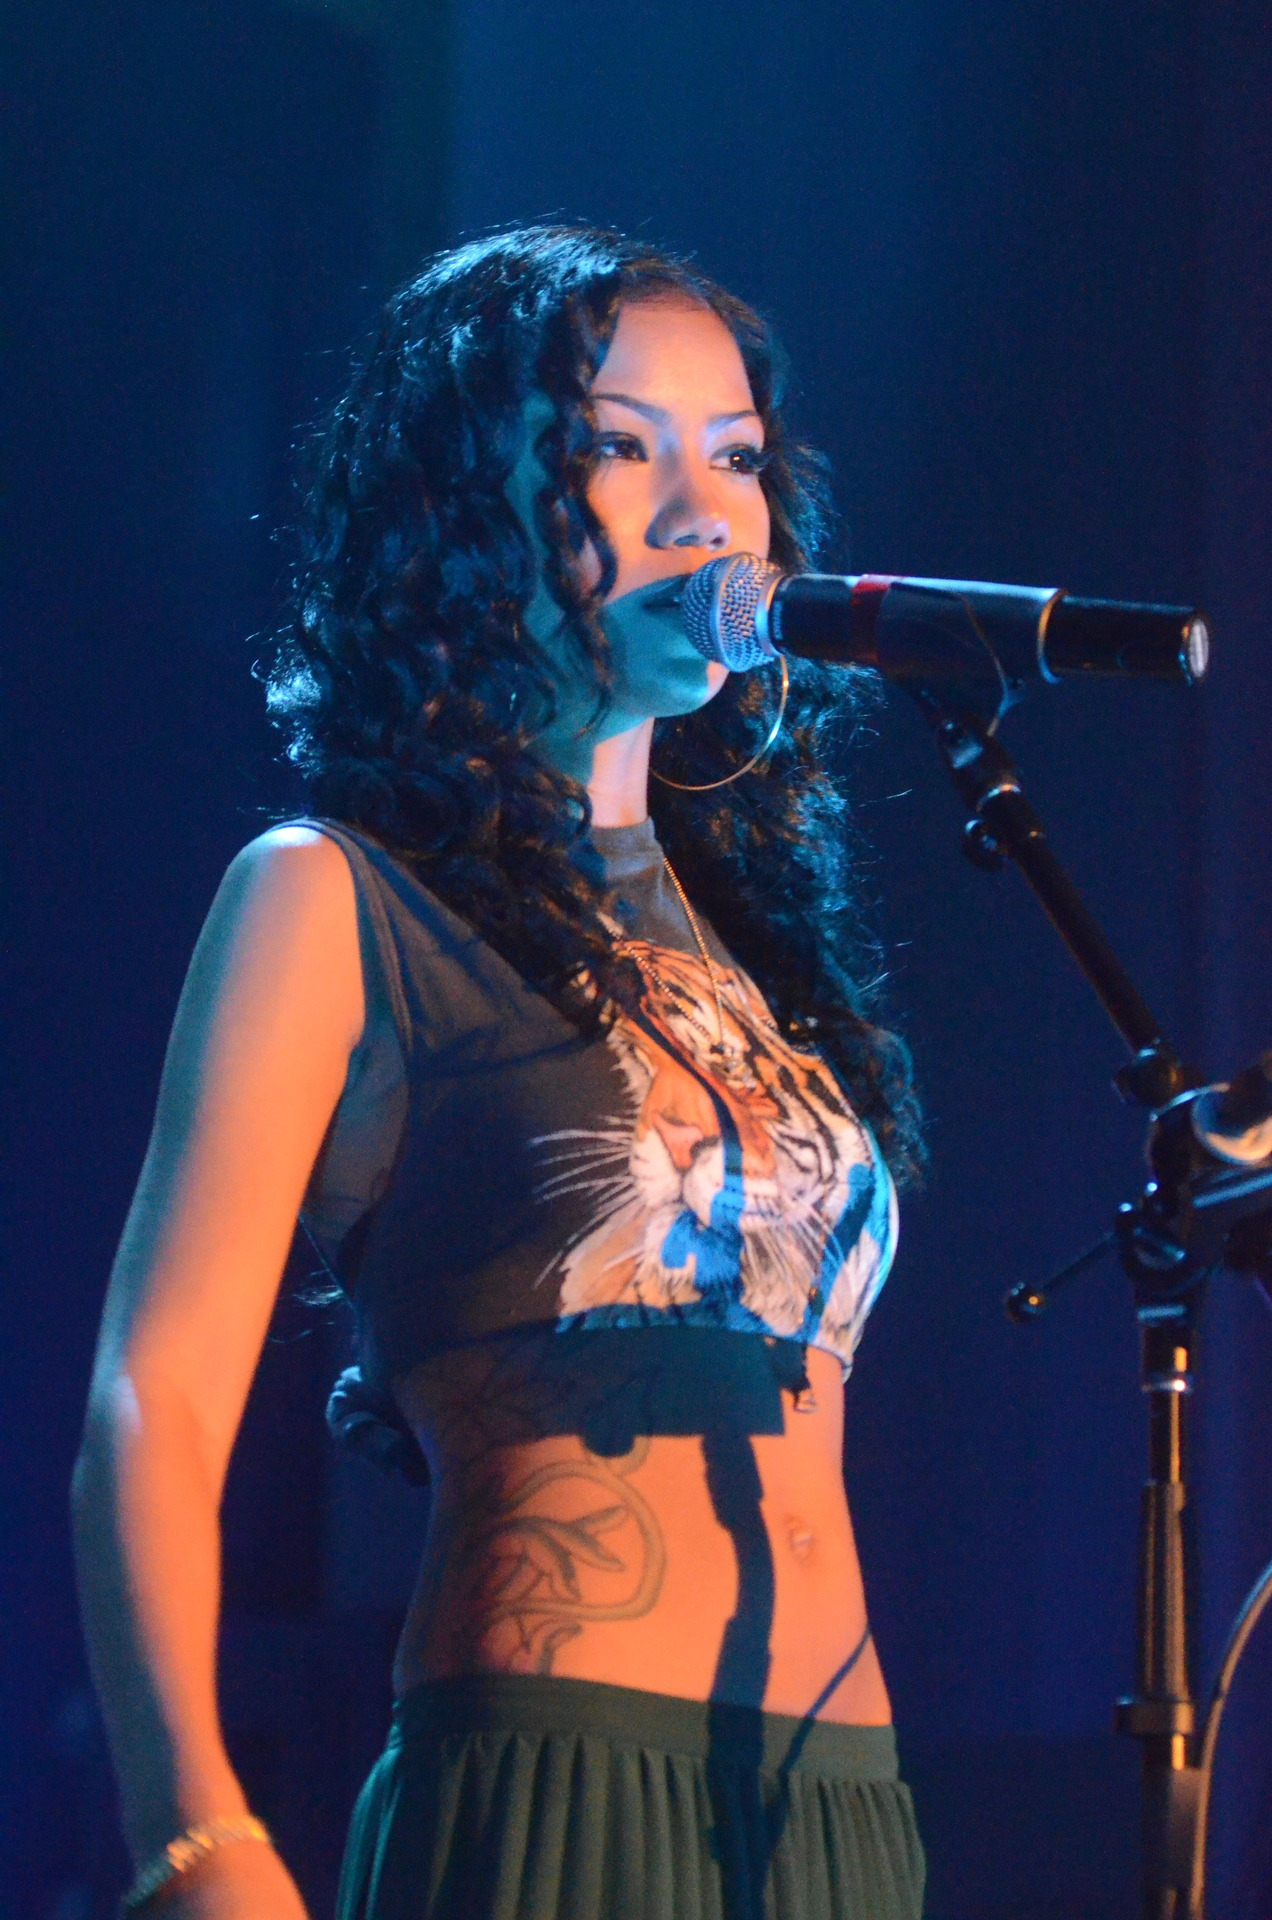 Jhene Aiko at my school, Grambling State University doing a free concert. She is my future wife…I took this picture by the way ;) #photographer